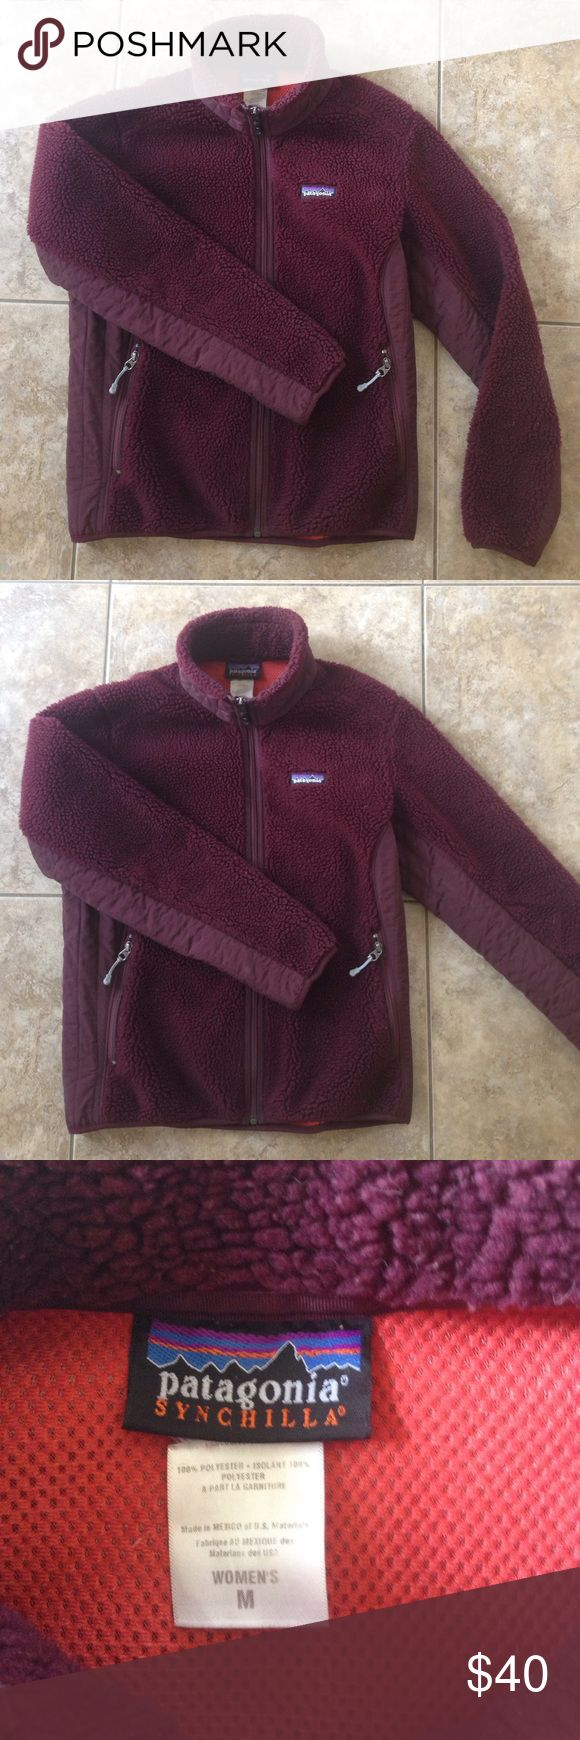 Patagonia retro x, full zip, wind proof fleece. Patagonia retro x synchilla full zip, wind proof fleece. Burgundy color. Good condition. Women's Med. Patagonia Jackets & Coats Utility Jackets